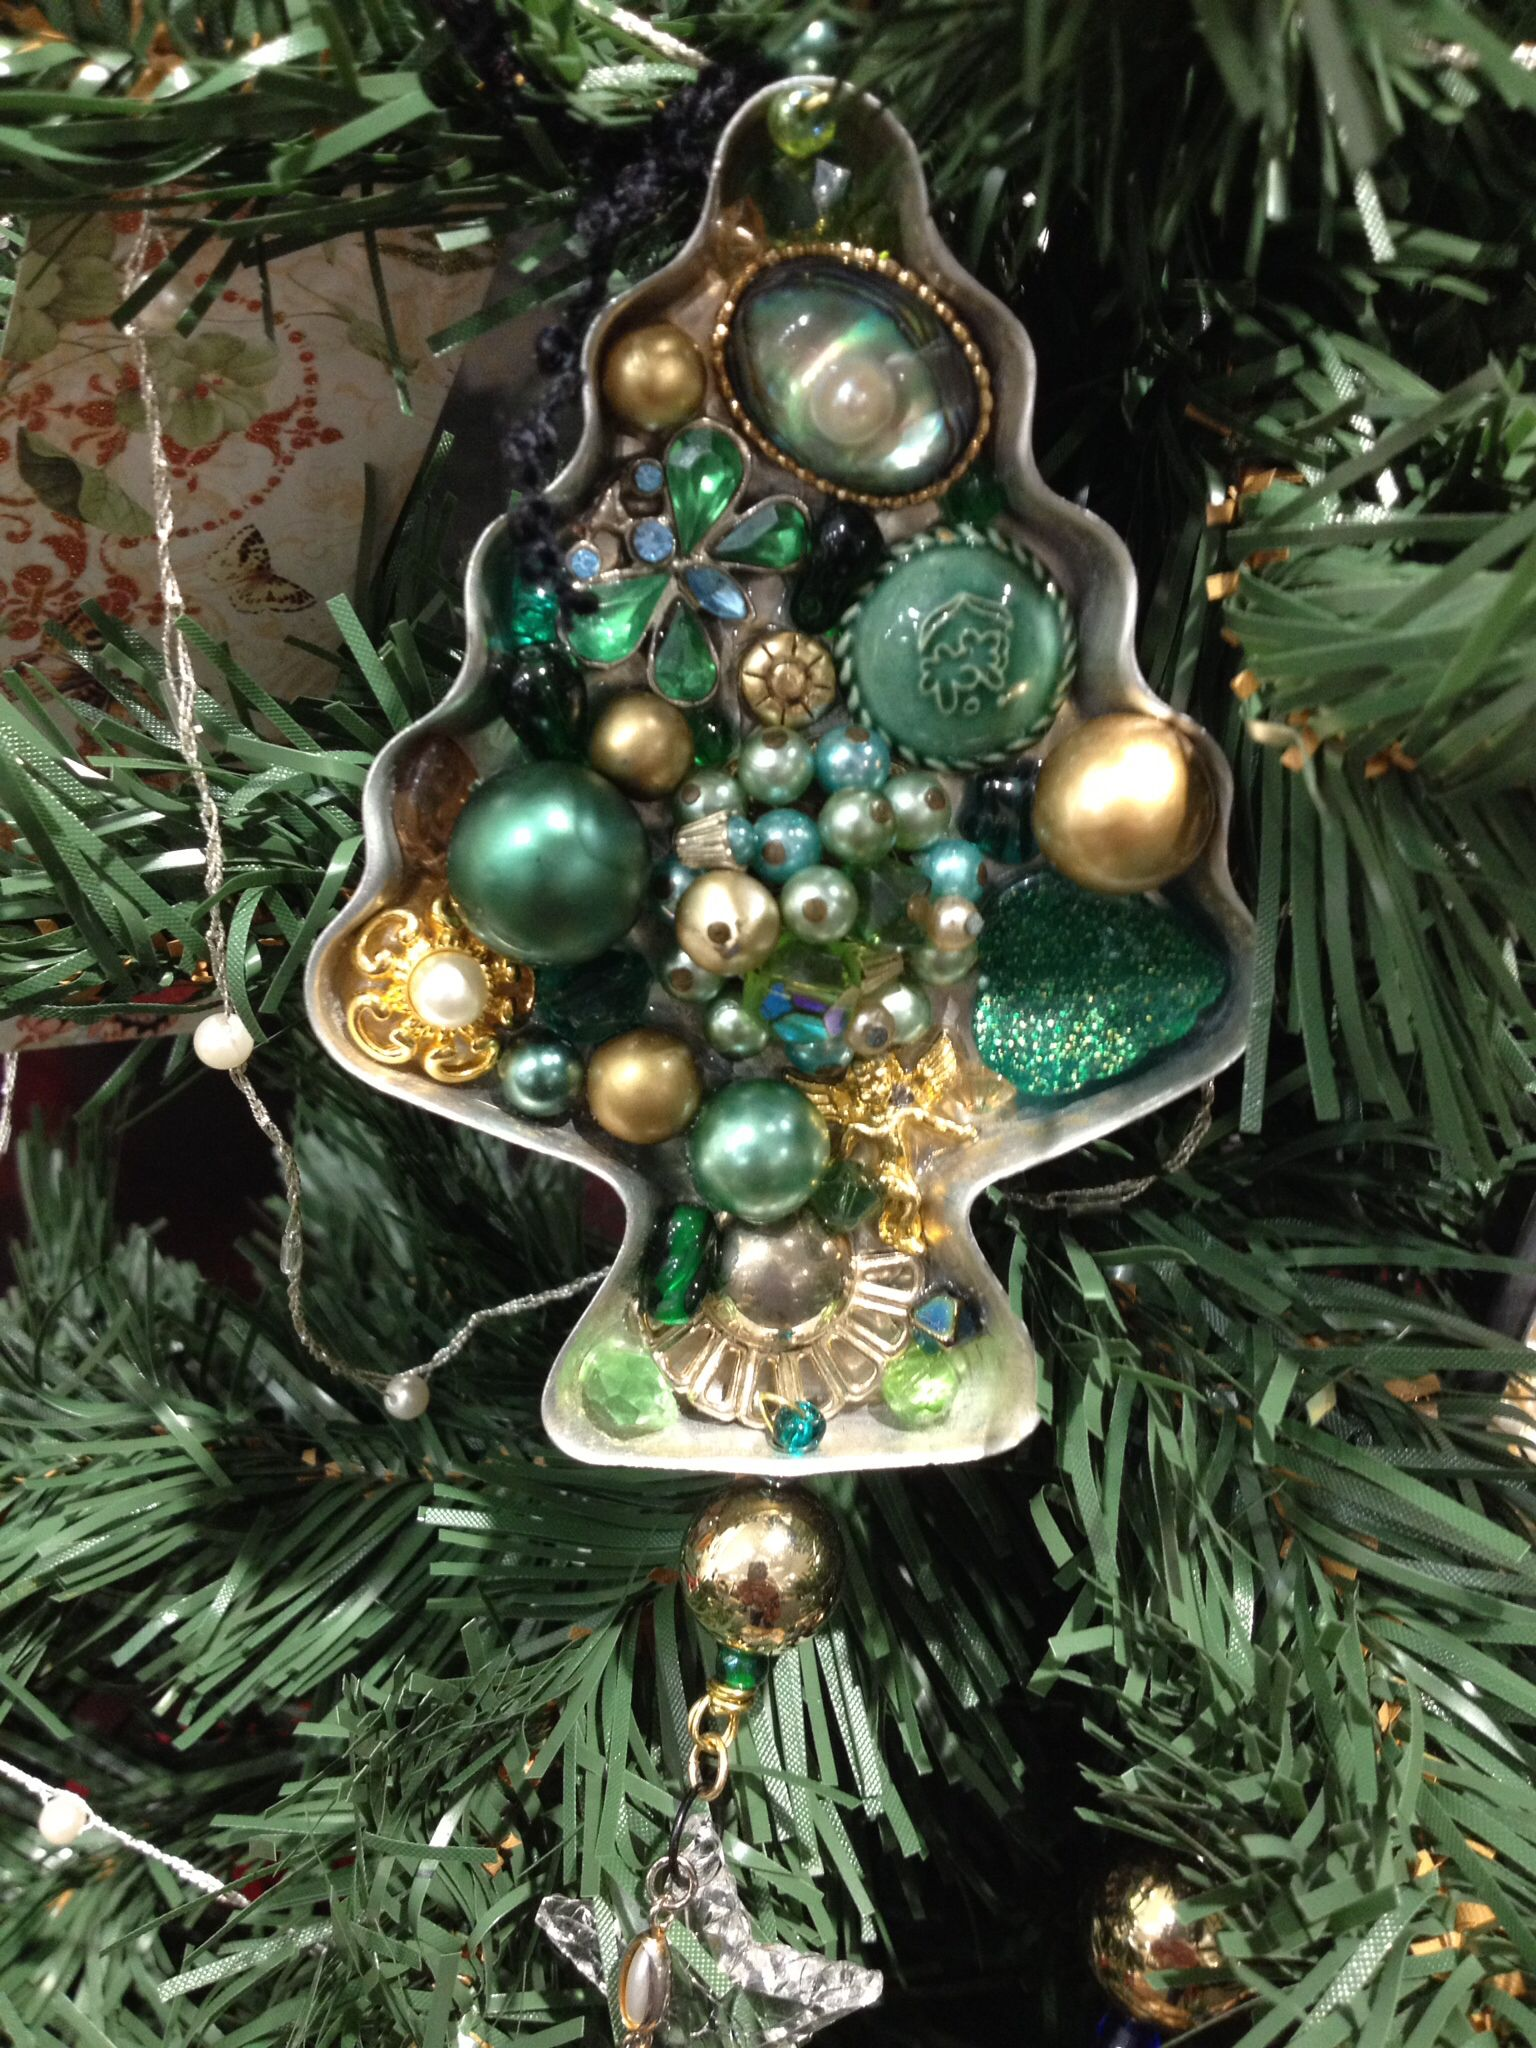 Repurposed Cookie Cutter Christmas Ornament Made By Vagabond Venus Christmas Ornaments Christmas Crafts Christmas Diy